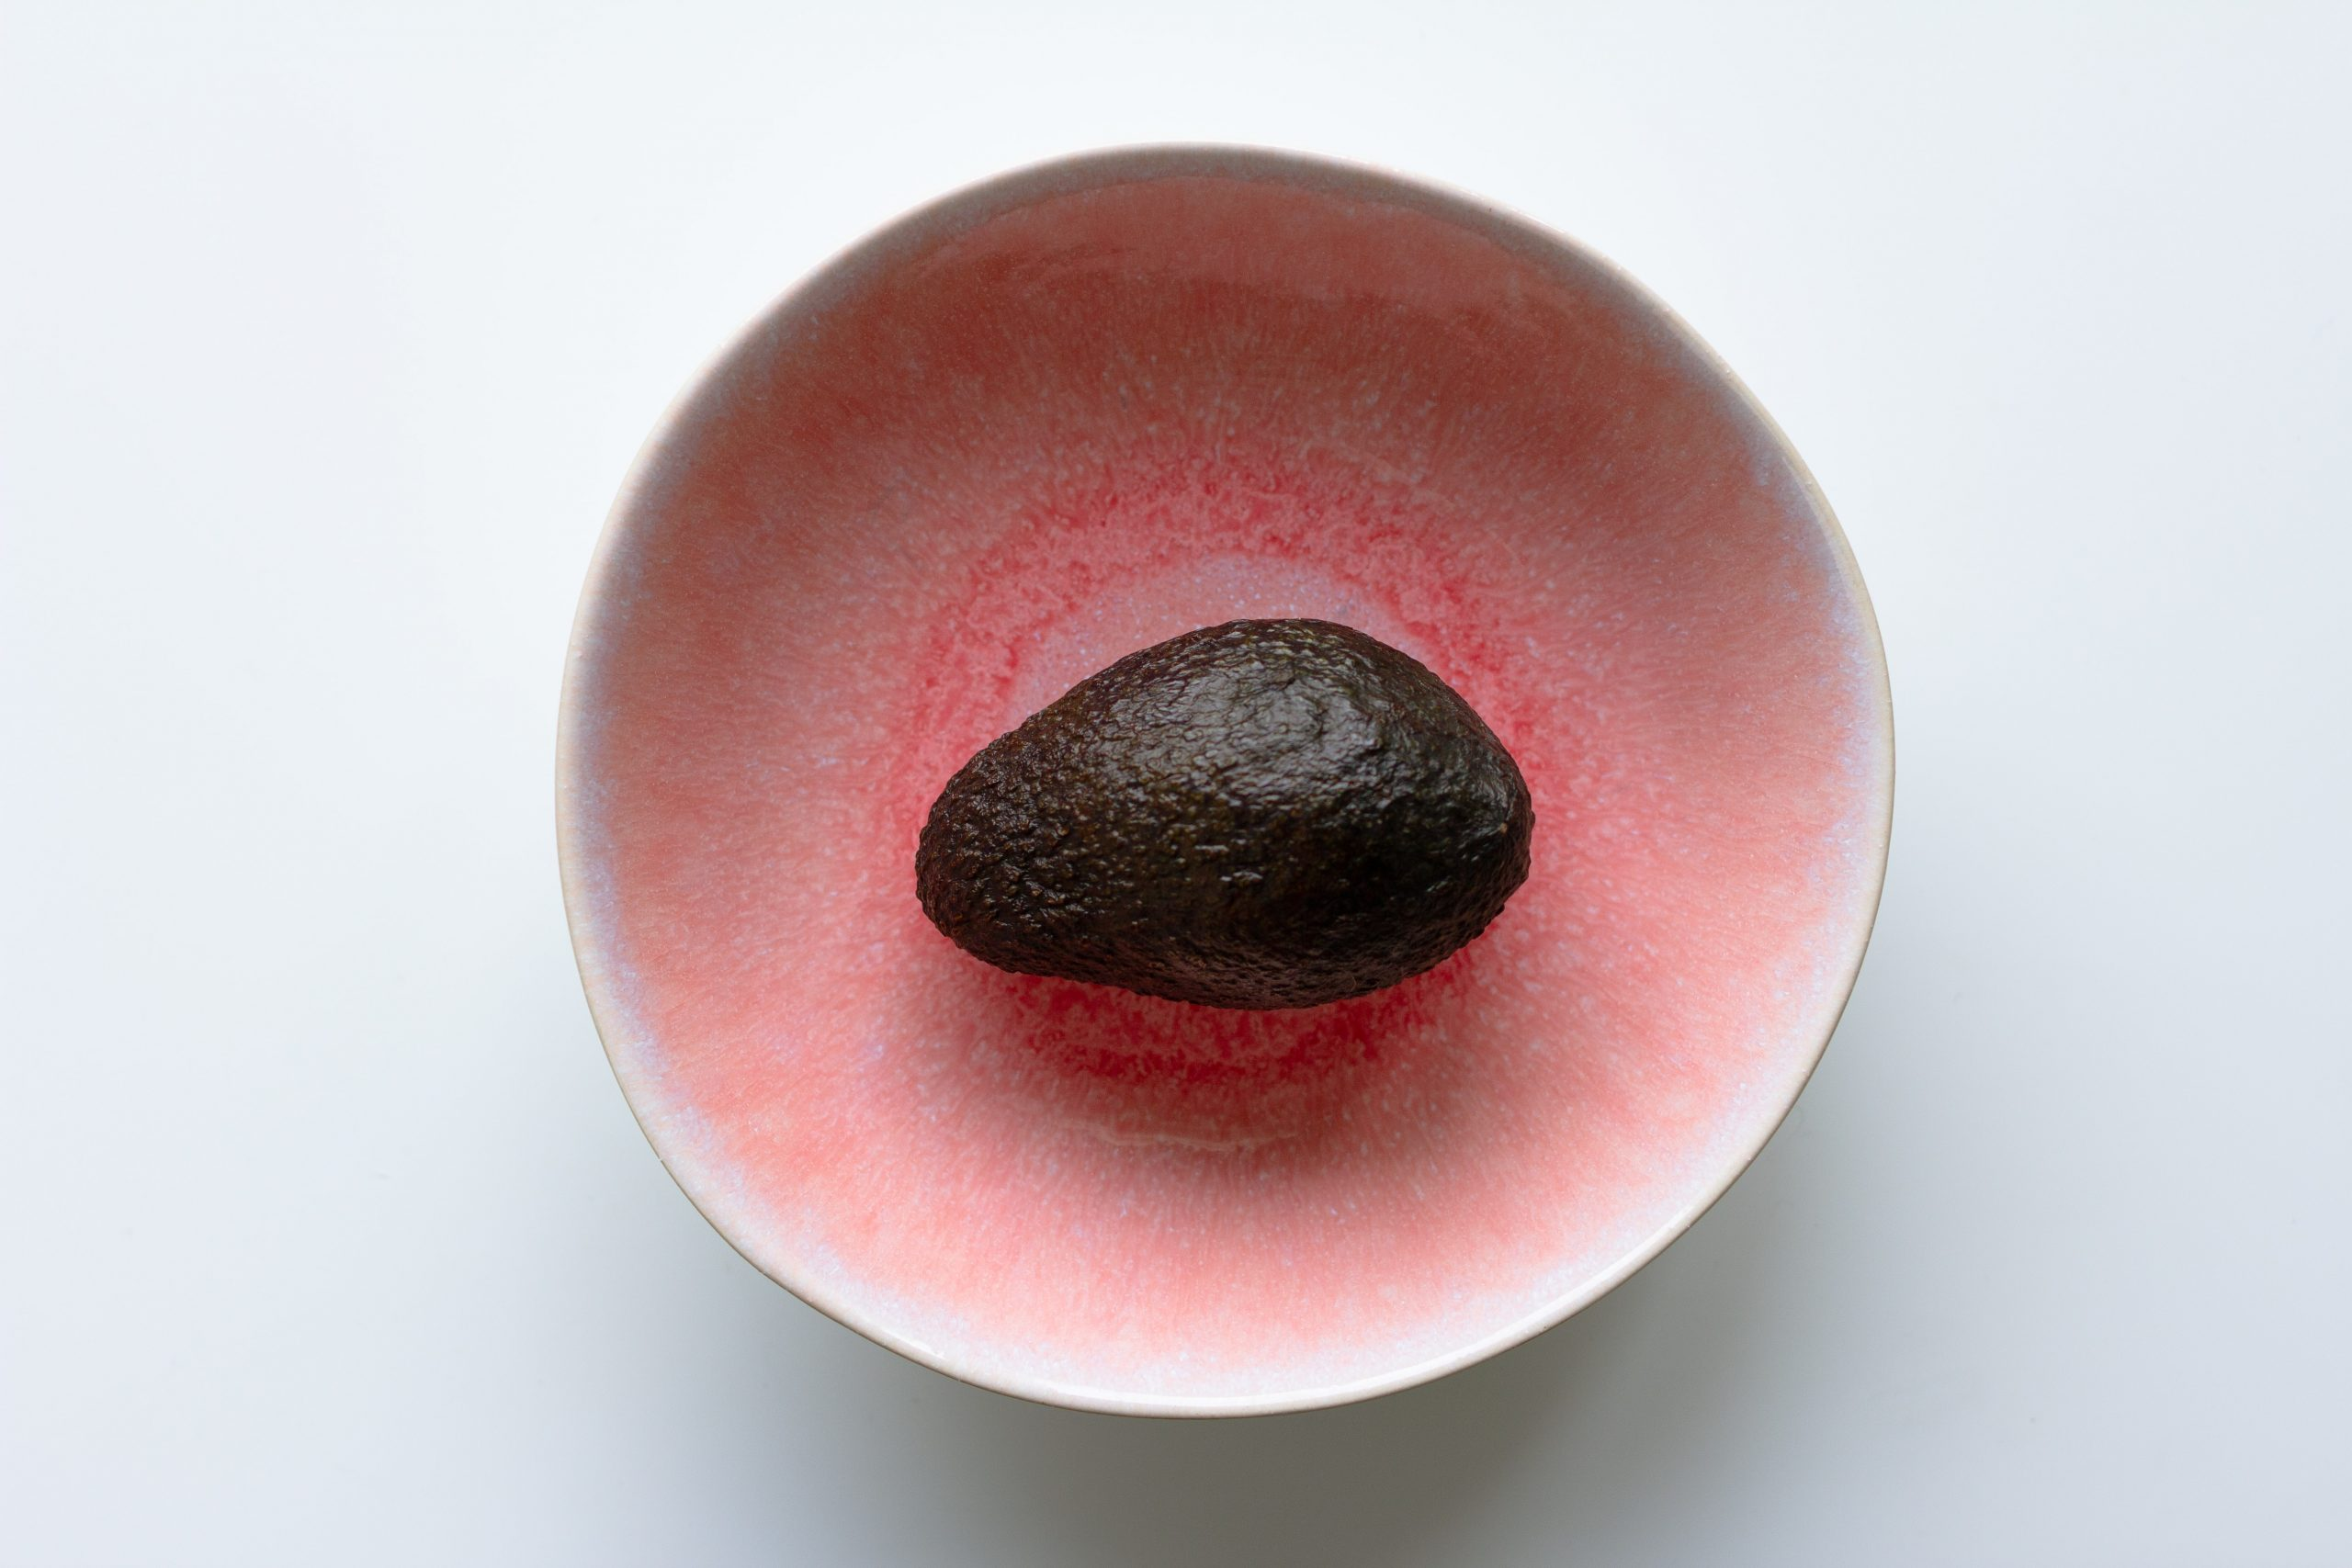 Avocado in a pink rustic bowl